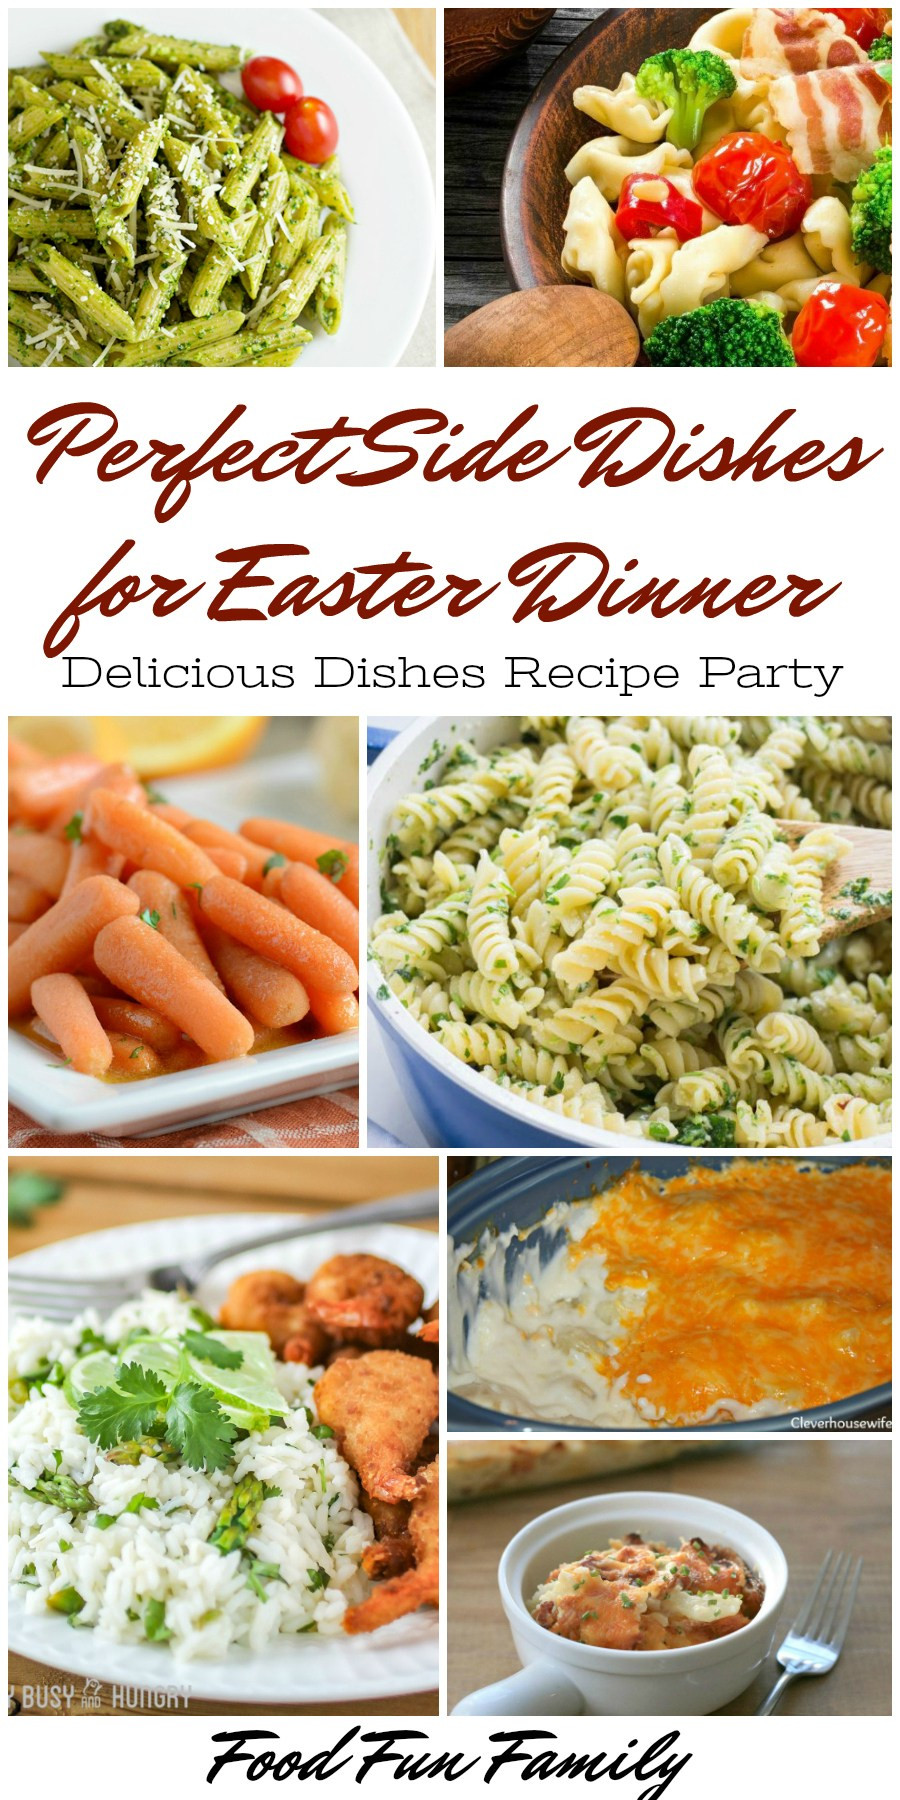 Sides For Easter Dinner  Perfect Side Dishes for Easter Dinner – Delicious Dishes